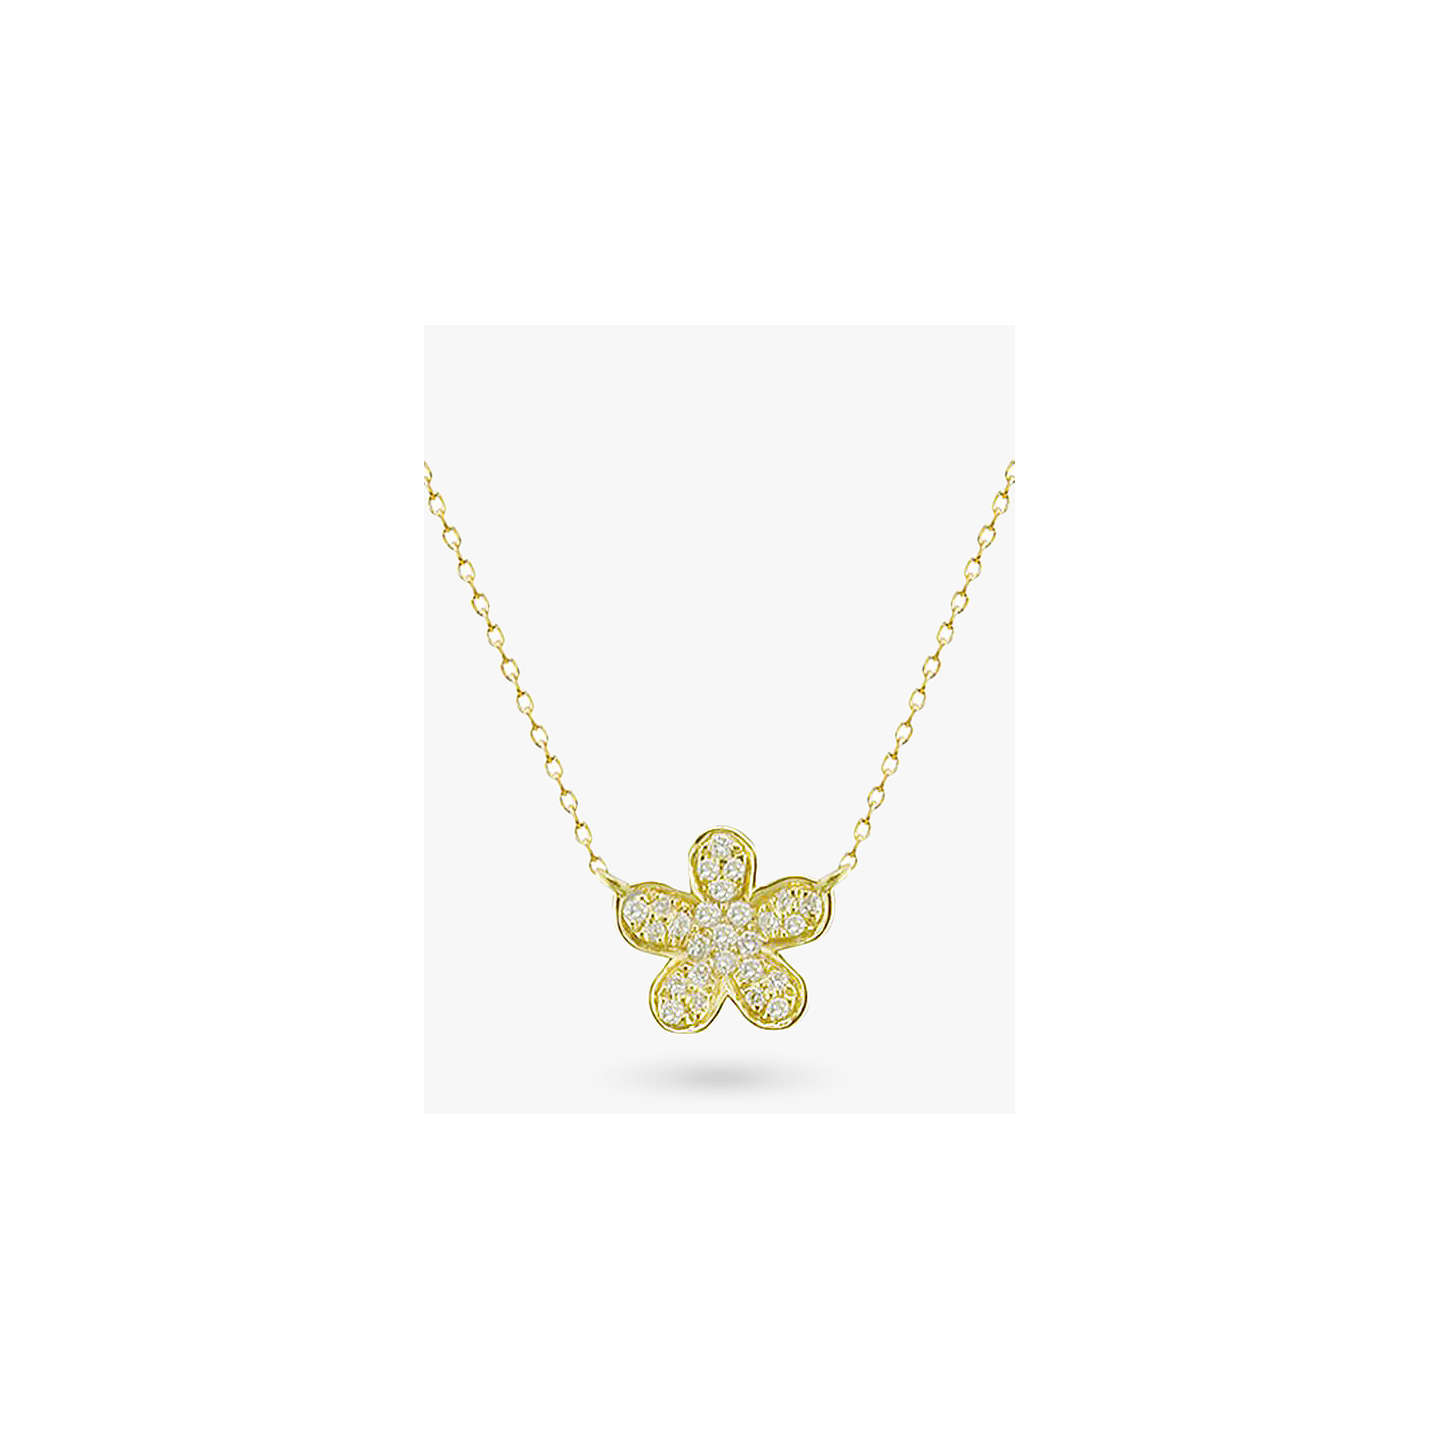 chain full gold c expand to flower click sna necklace pendant item box vintage